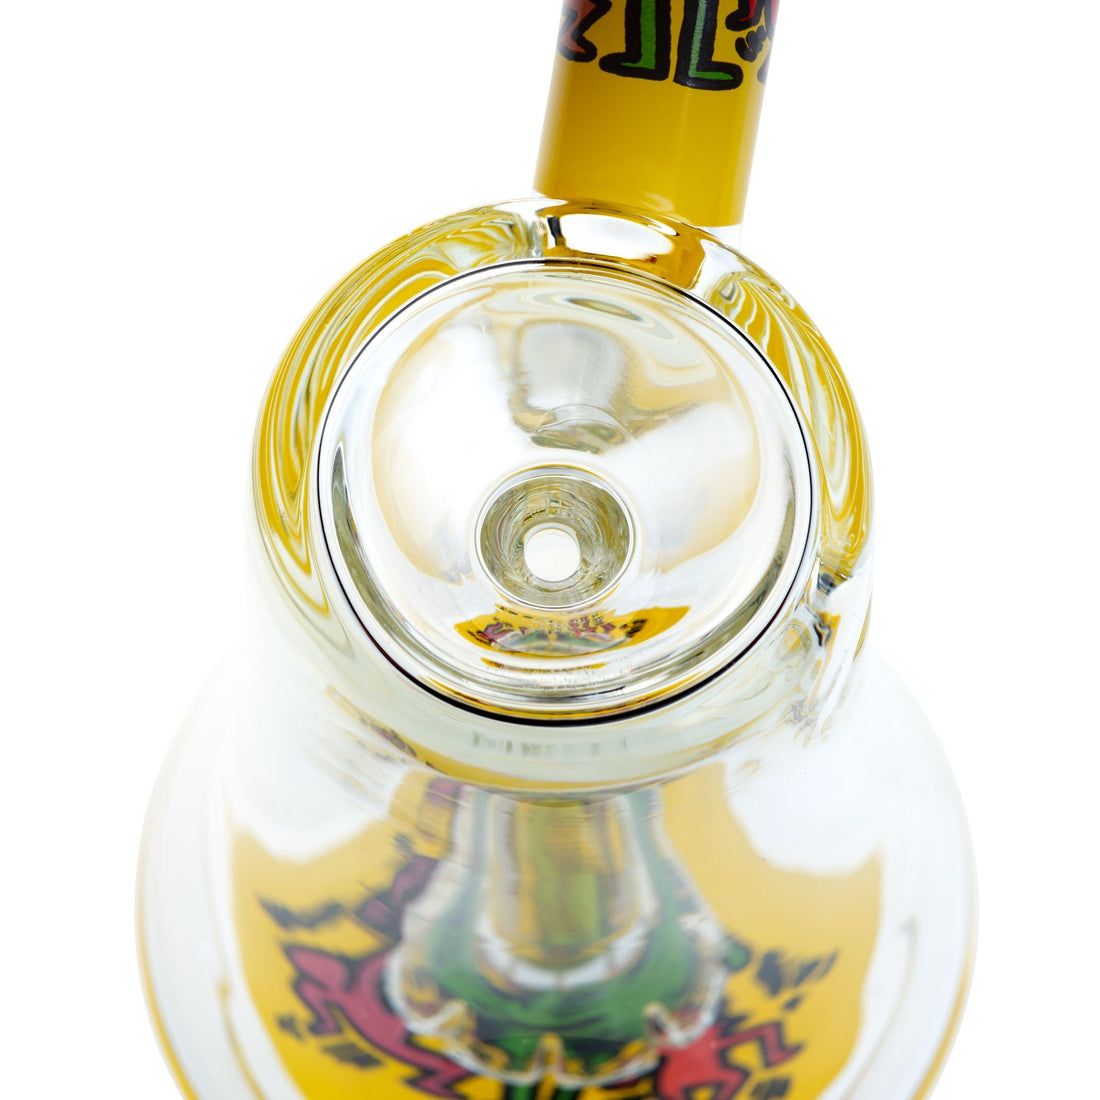 K. Haring Bubbler Pipe - Yellow - 420 Science - The most trusted online smoke shop.